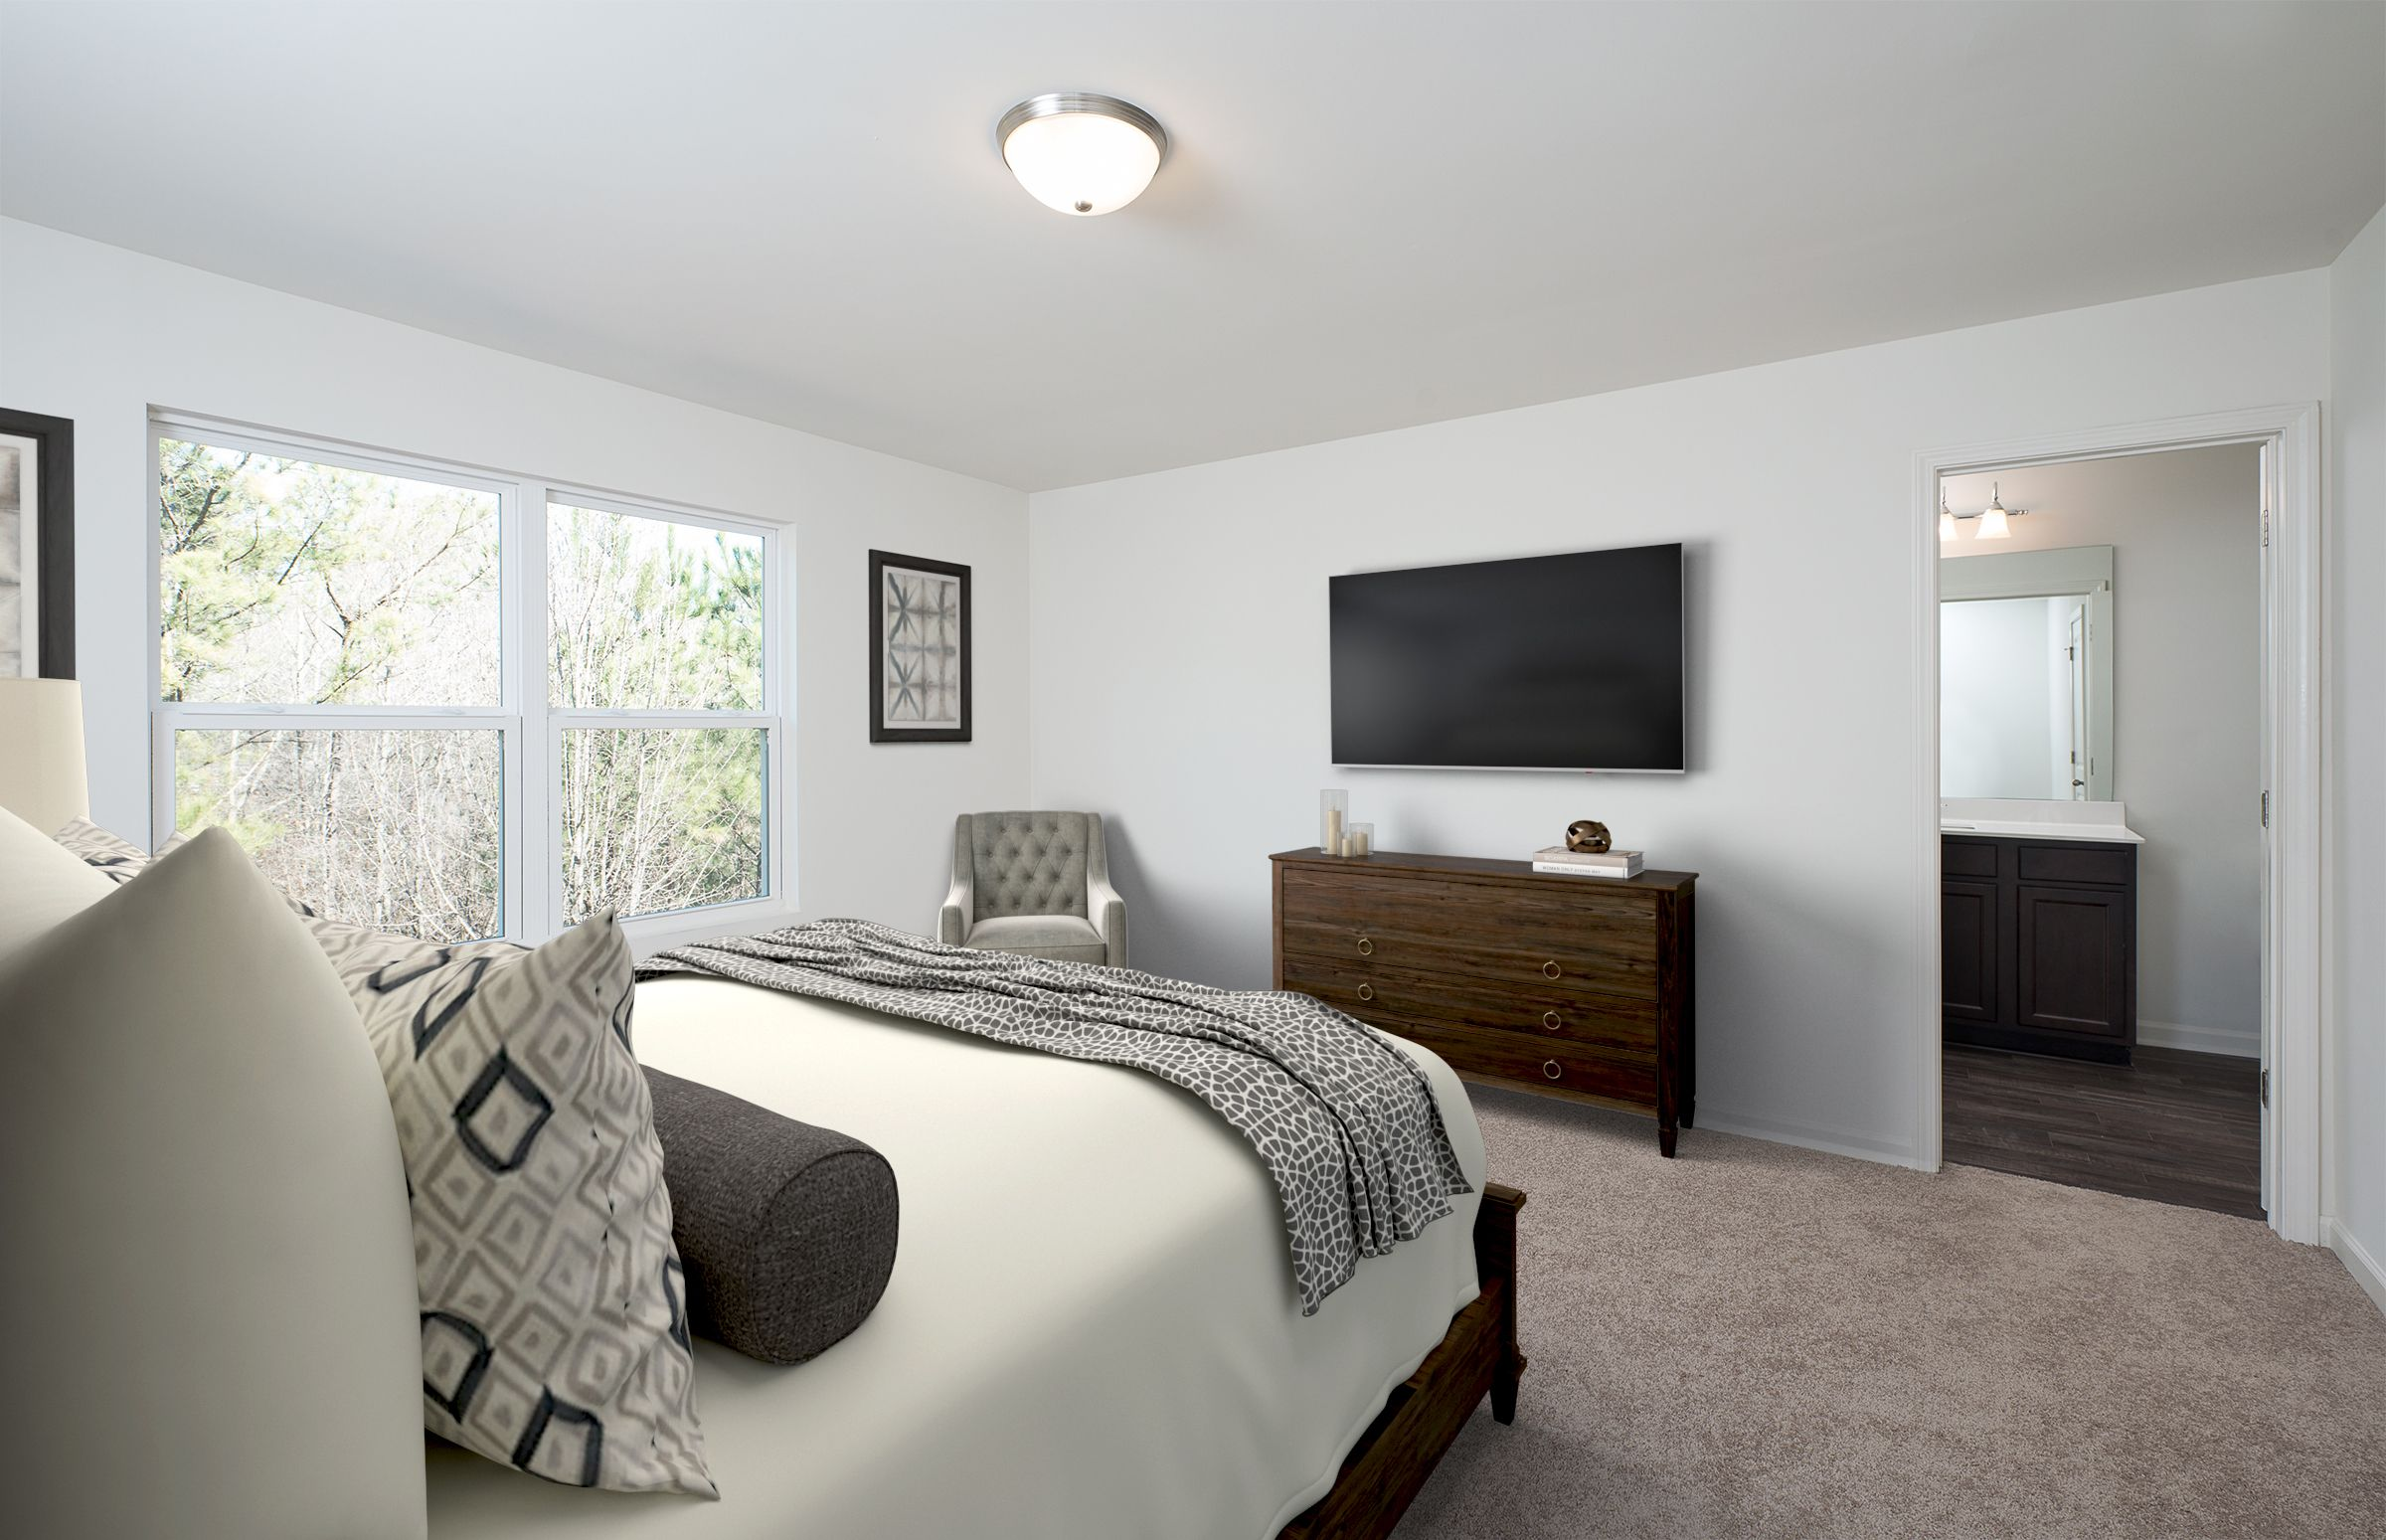 Bedroom featured in the Galaxy By Starlight Homes in Atlanta, GA